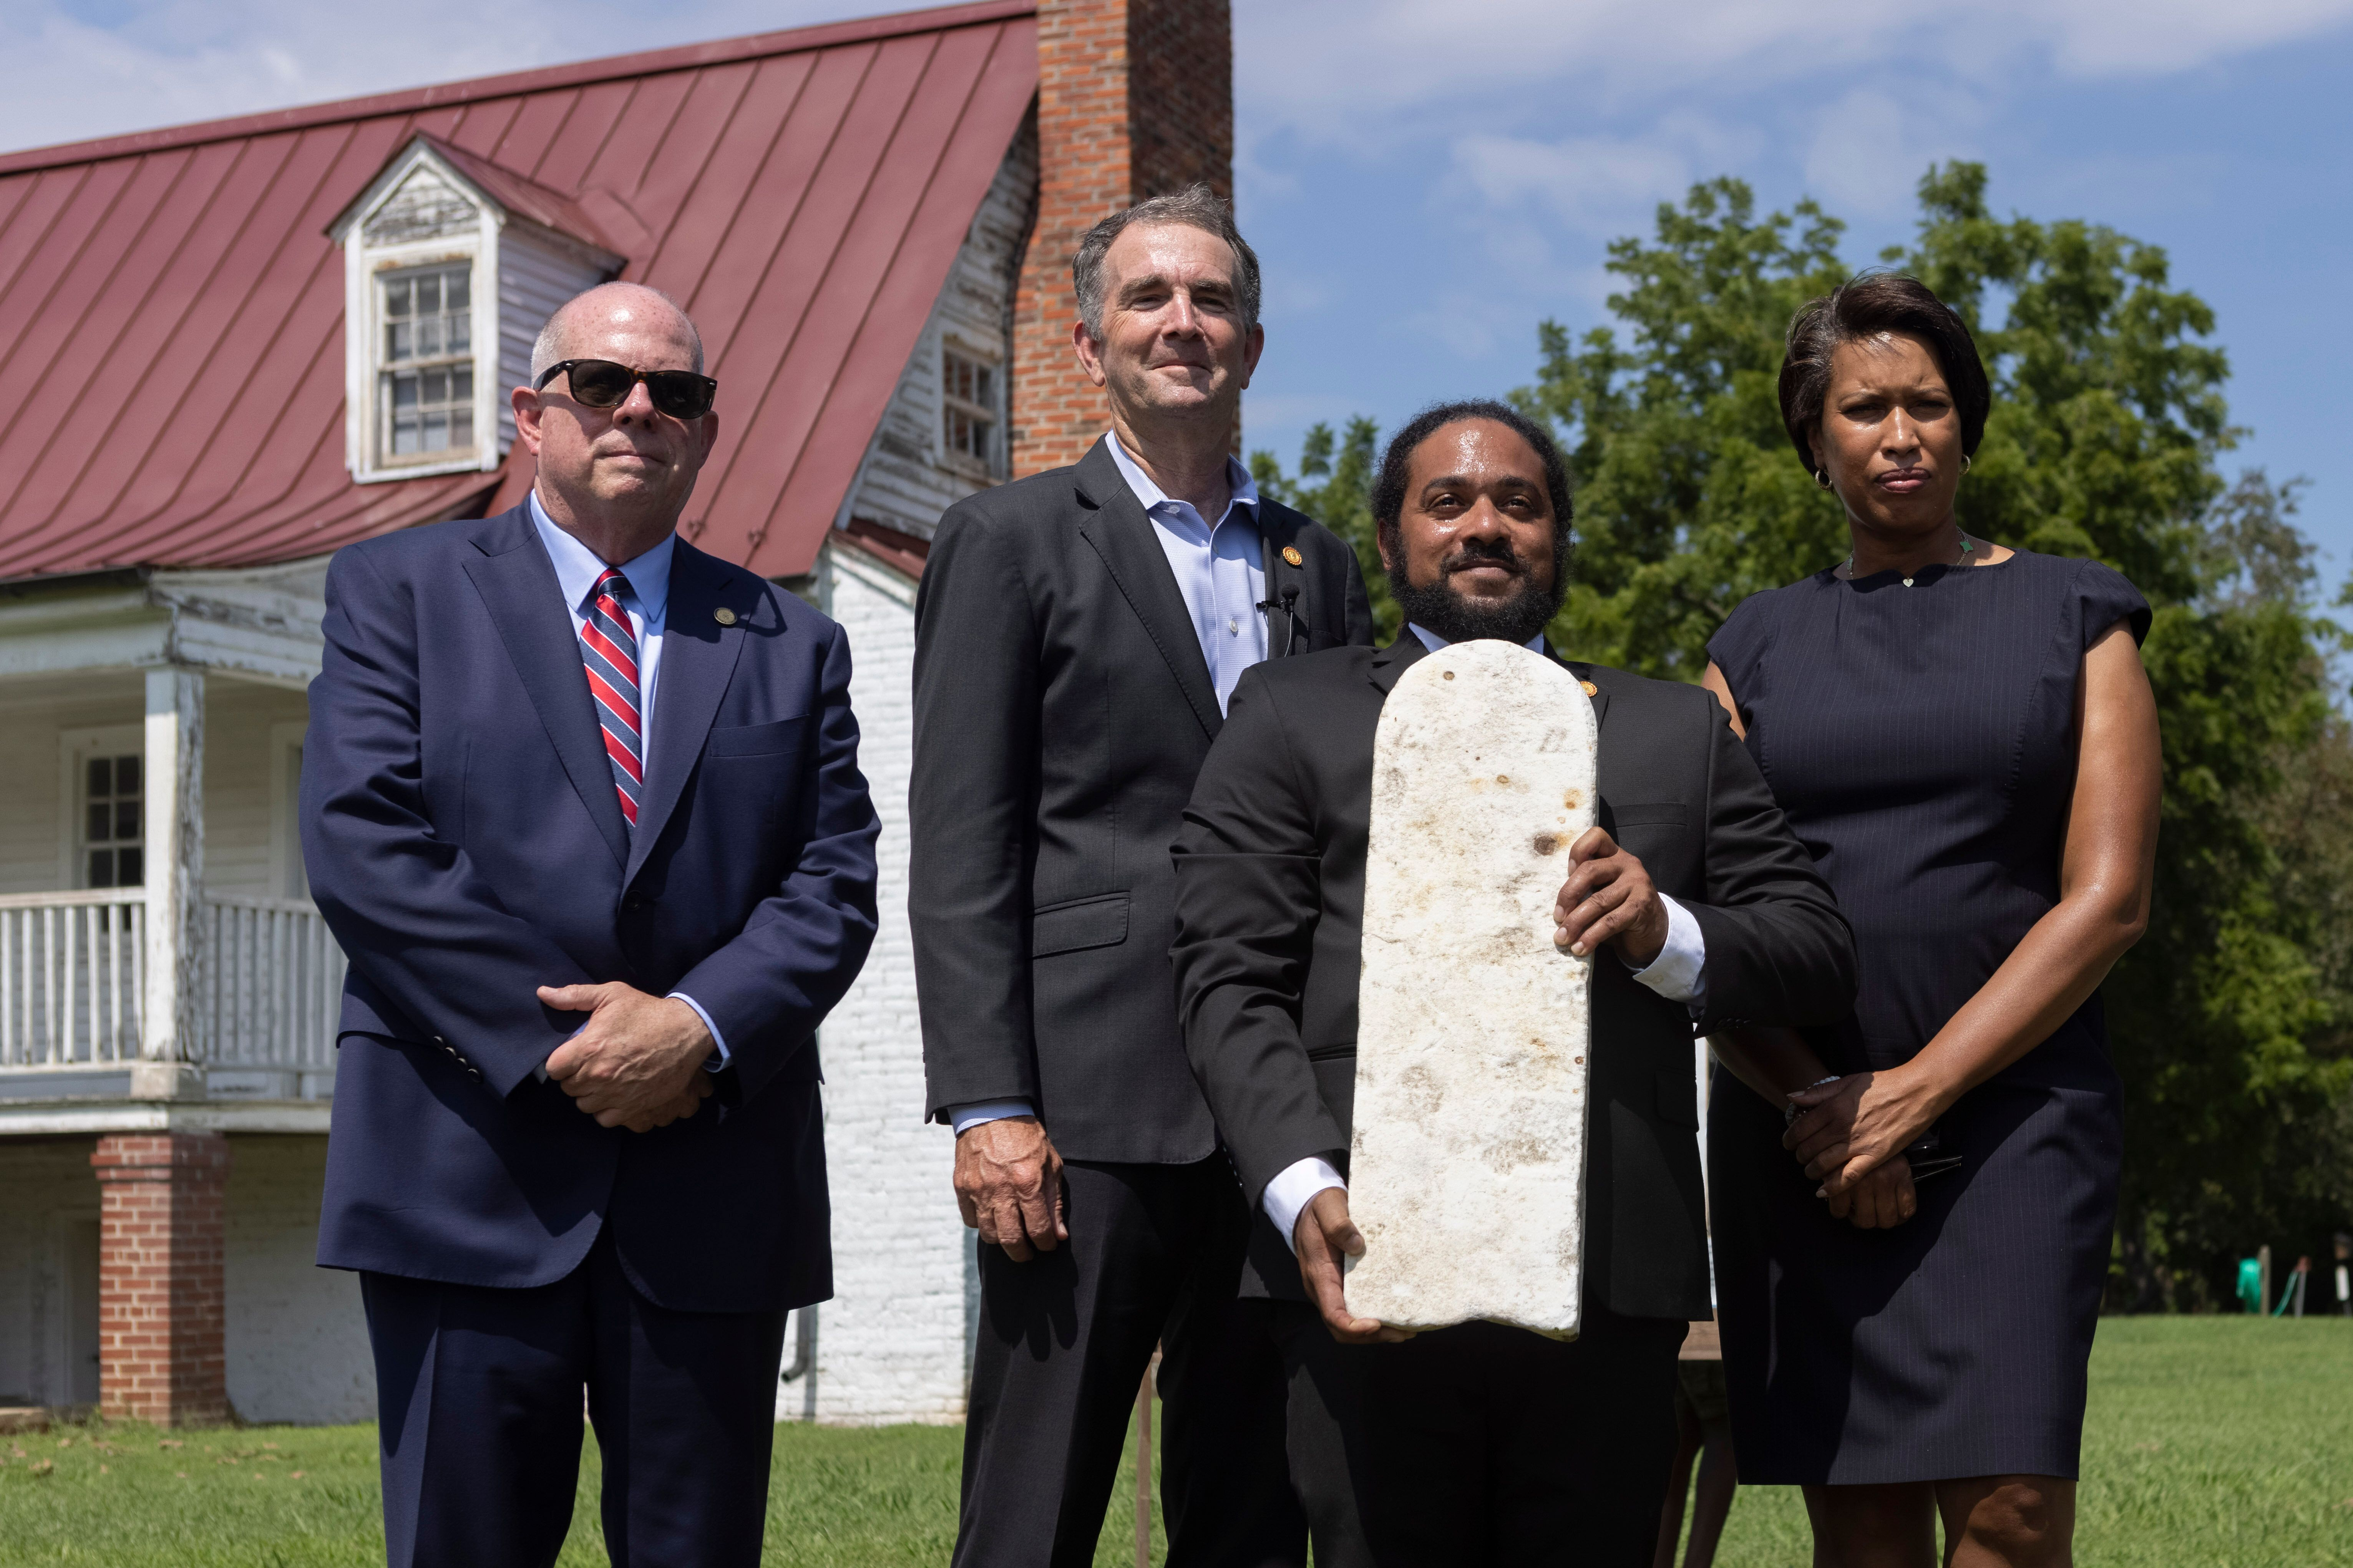 Nathan Burrell, with the Virginia Department of Conservation and Recreation, holds a grave marker and poses with, from left,